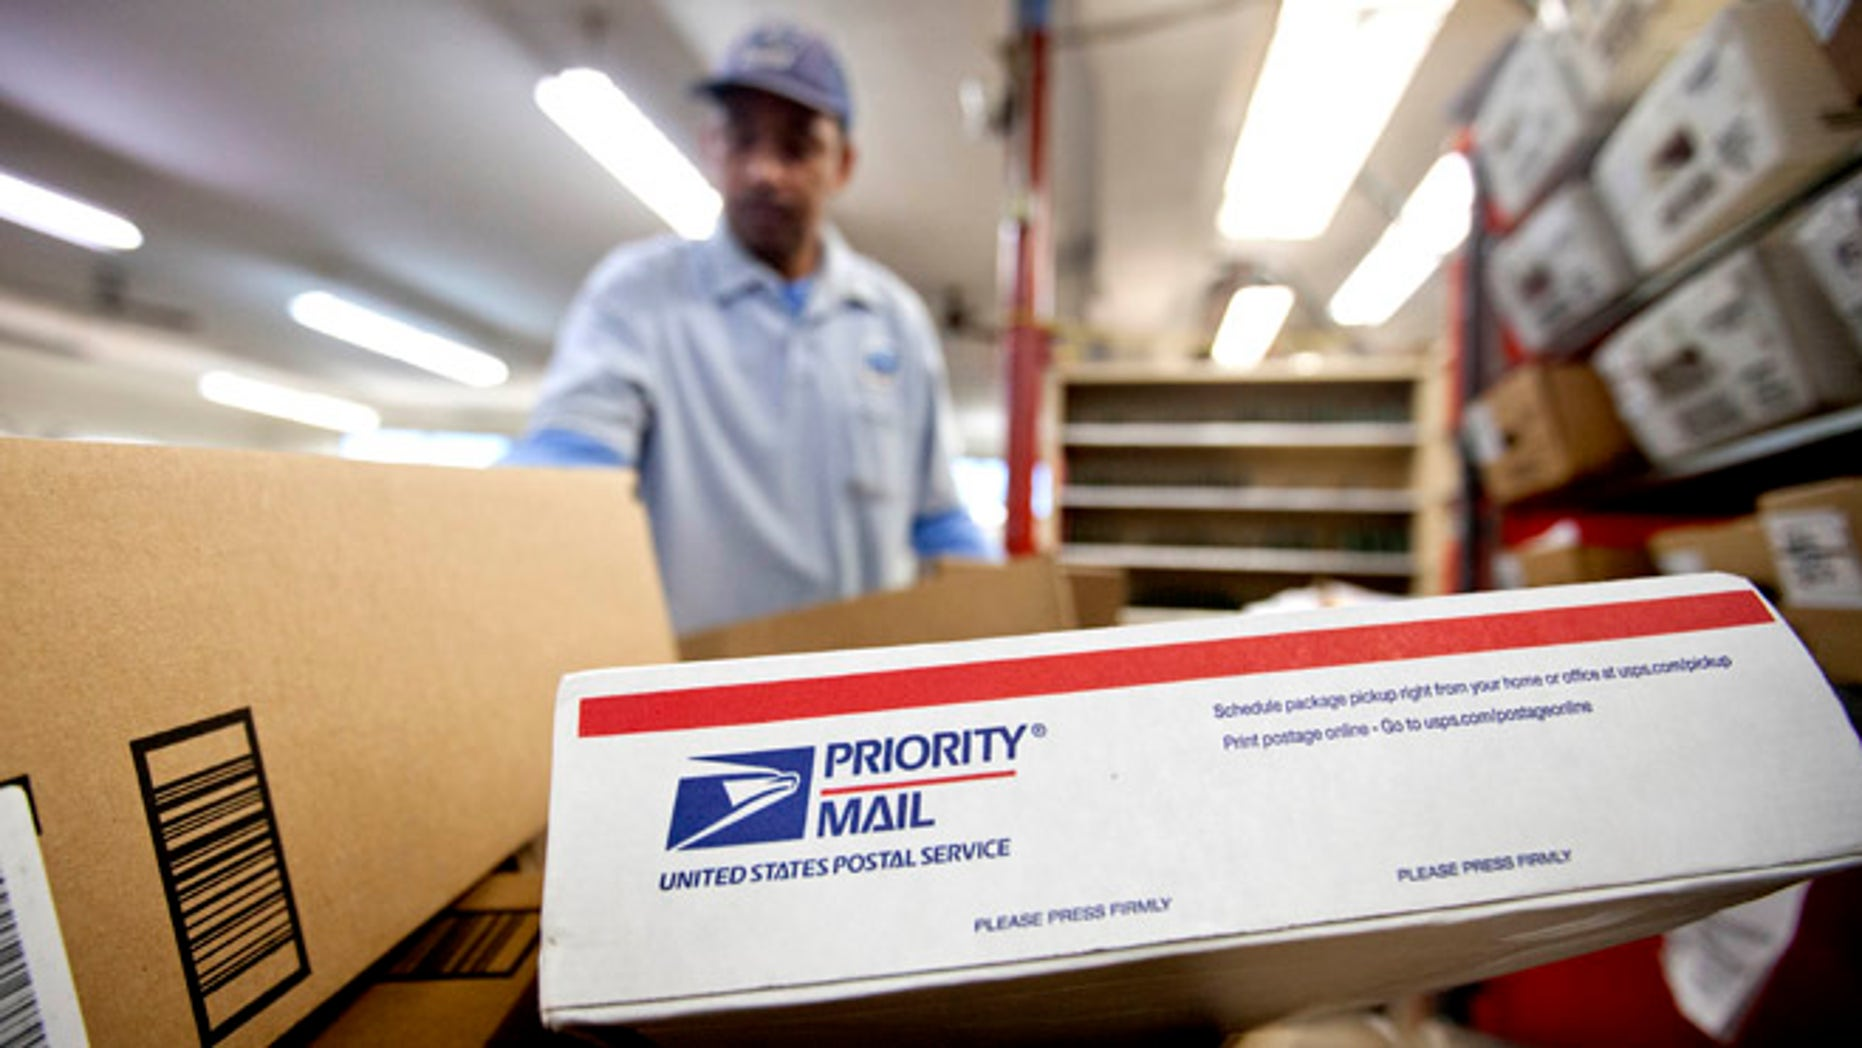 Feb. 7, 2013: In this file photo, packages wait to be sorted in a Post Office as U.S. Postal Service letter carrier  Michael McDonald, gathers mail to load into his truck before making his delivery run, in Atlanta.